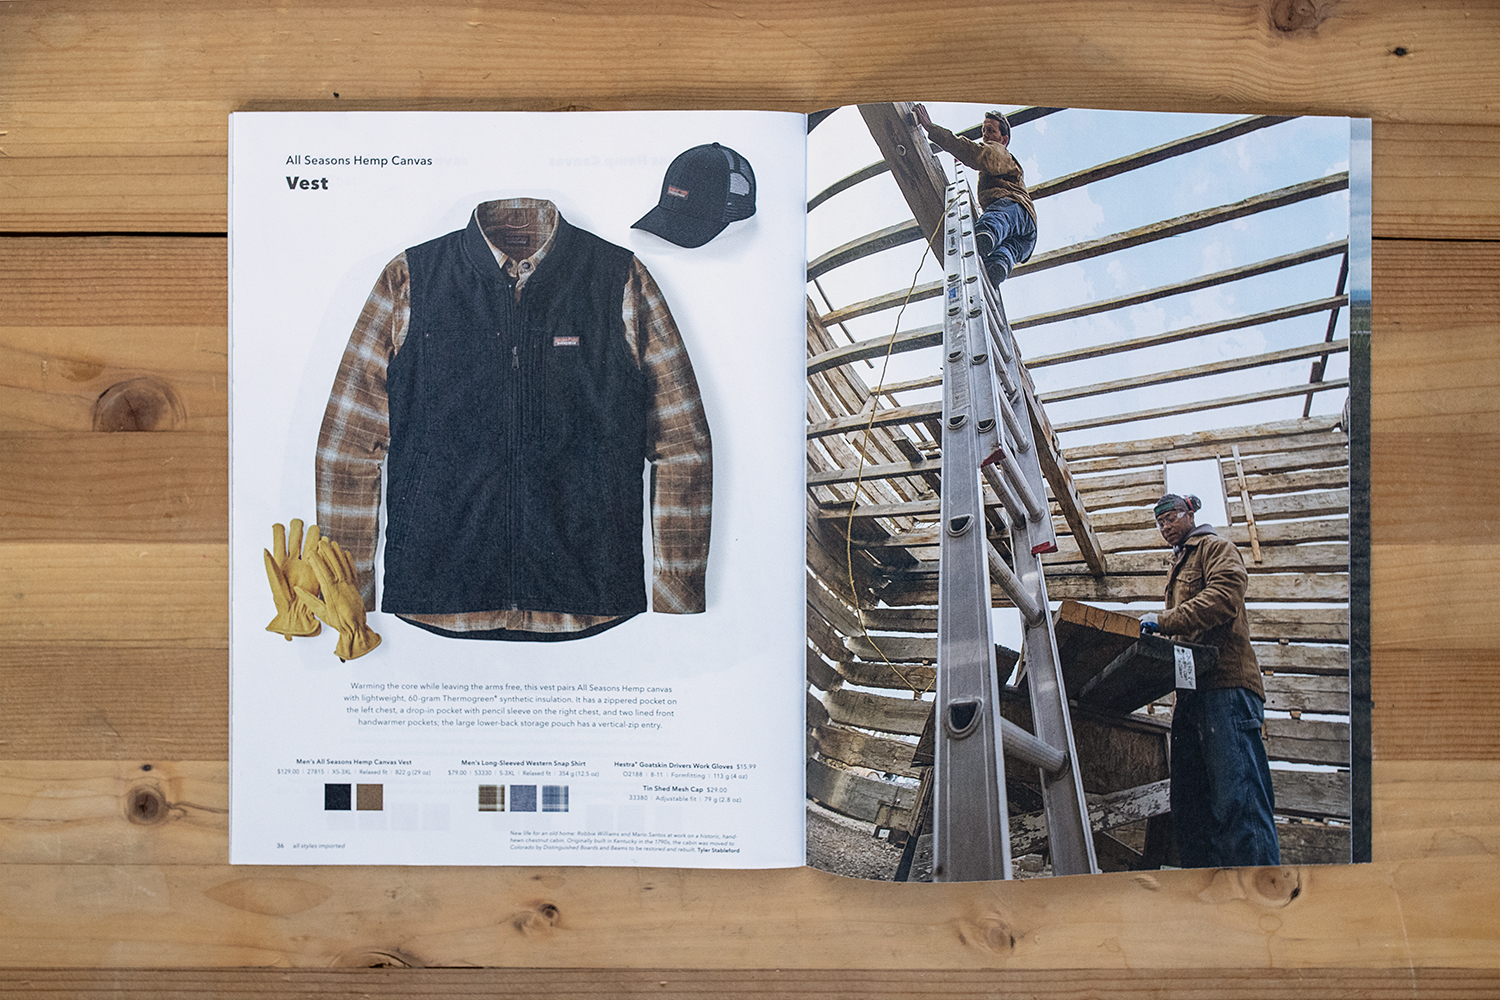 Stableford workwear image in Patagonia catalog